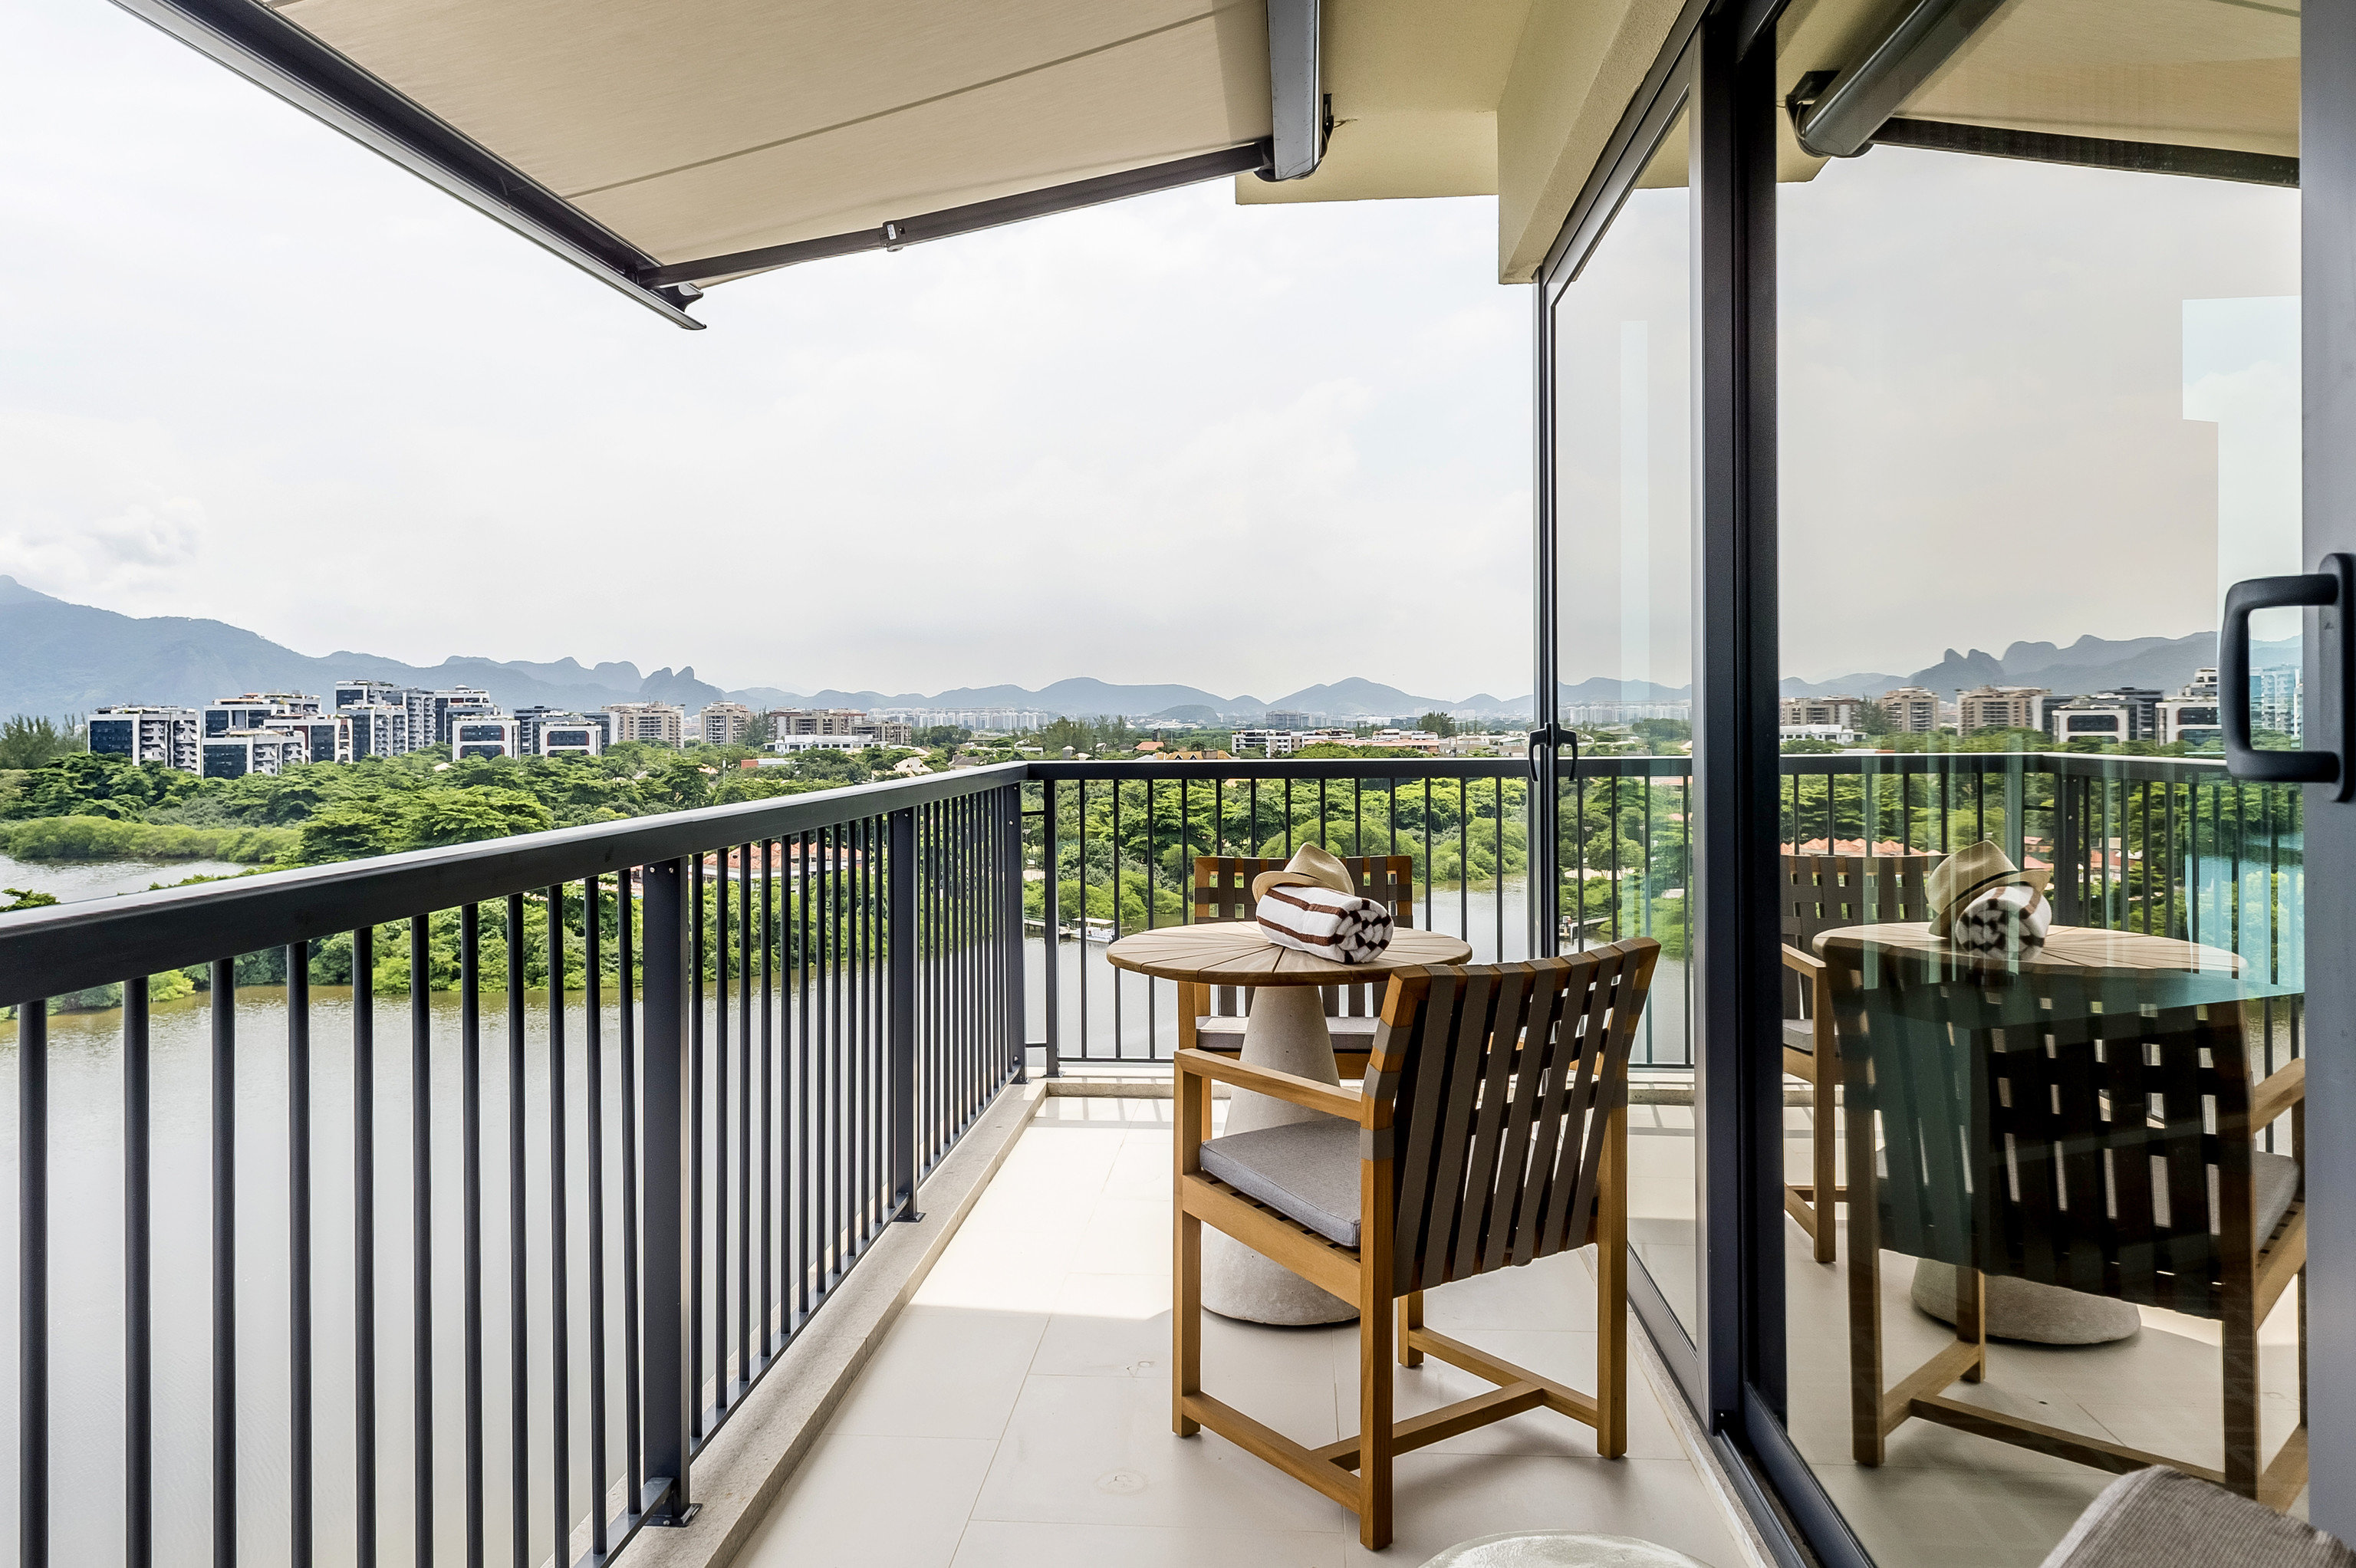 Hotels sky chair building outdoor property porch Balcony real estate Deck apartment home outdoor structure window house estate roof overlooking condominium area furniture